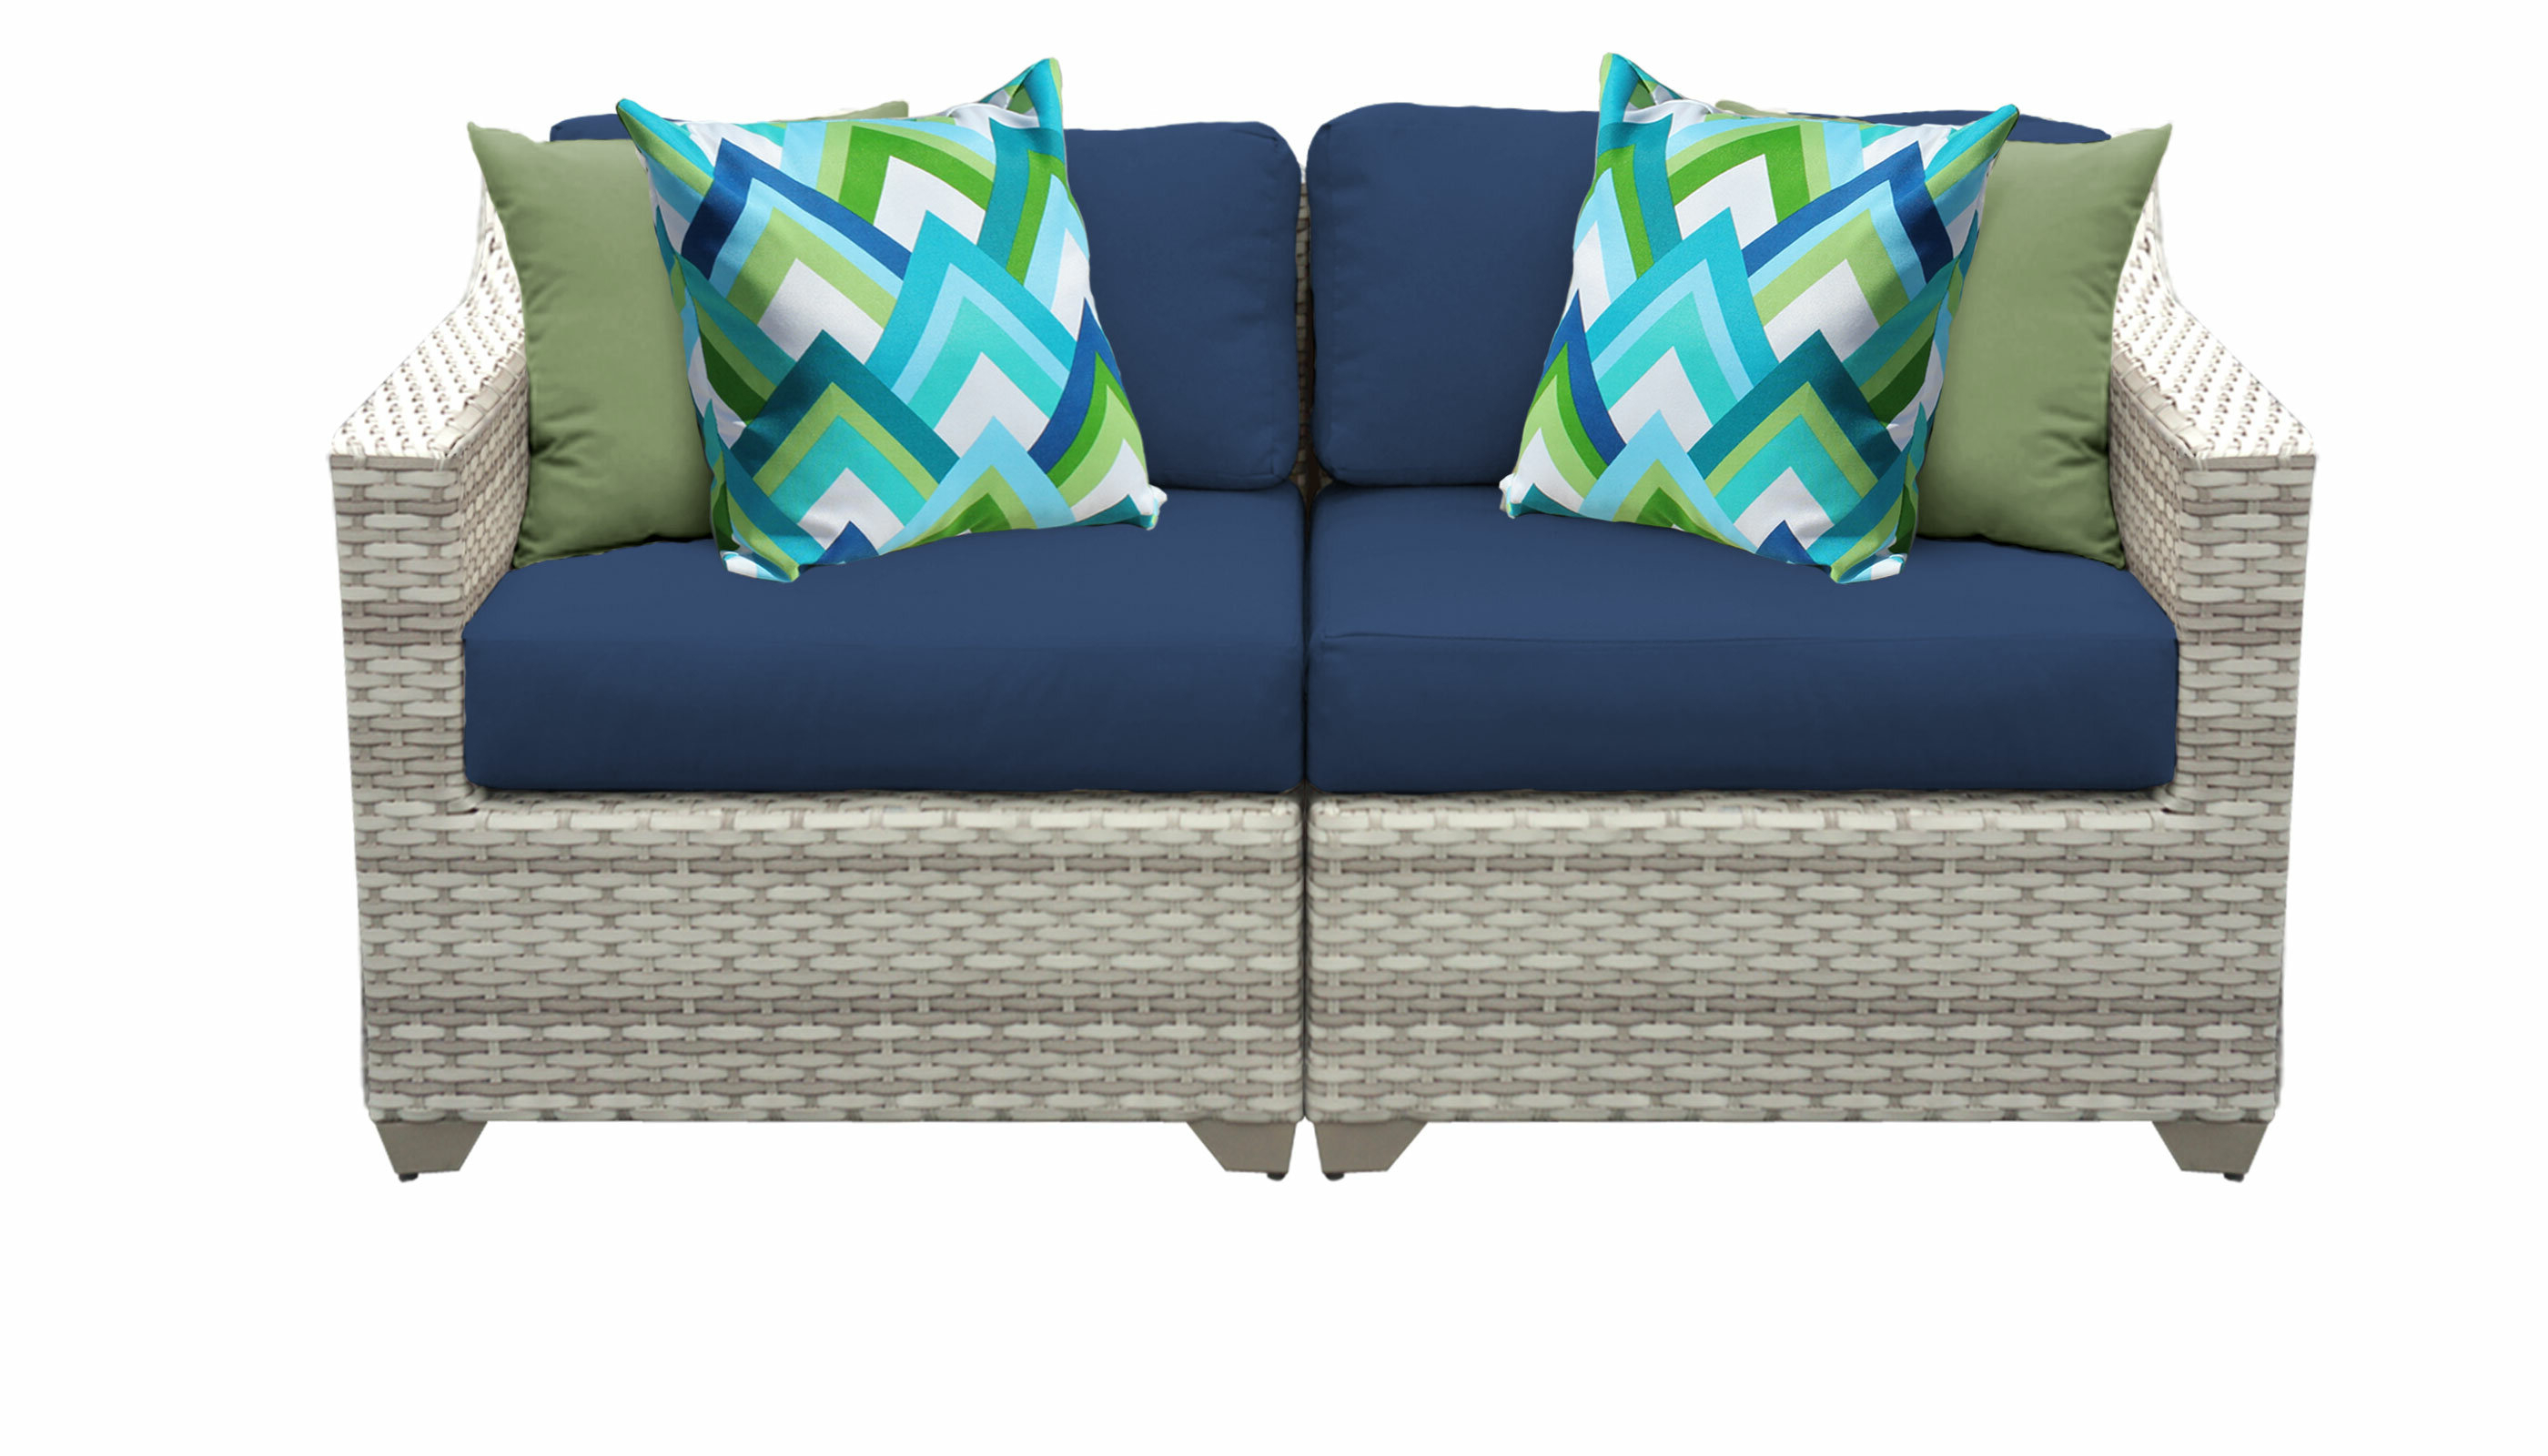 Falmouth Loveseat With Cushions Within 2019 Falmouth Loveseats With Cushions (View 3 of 20)